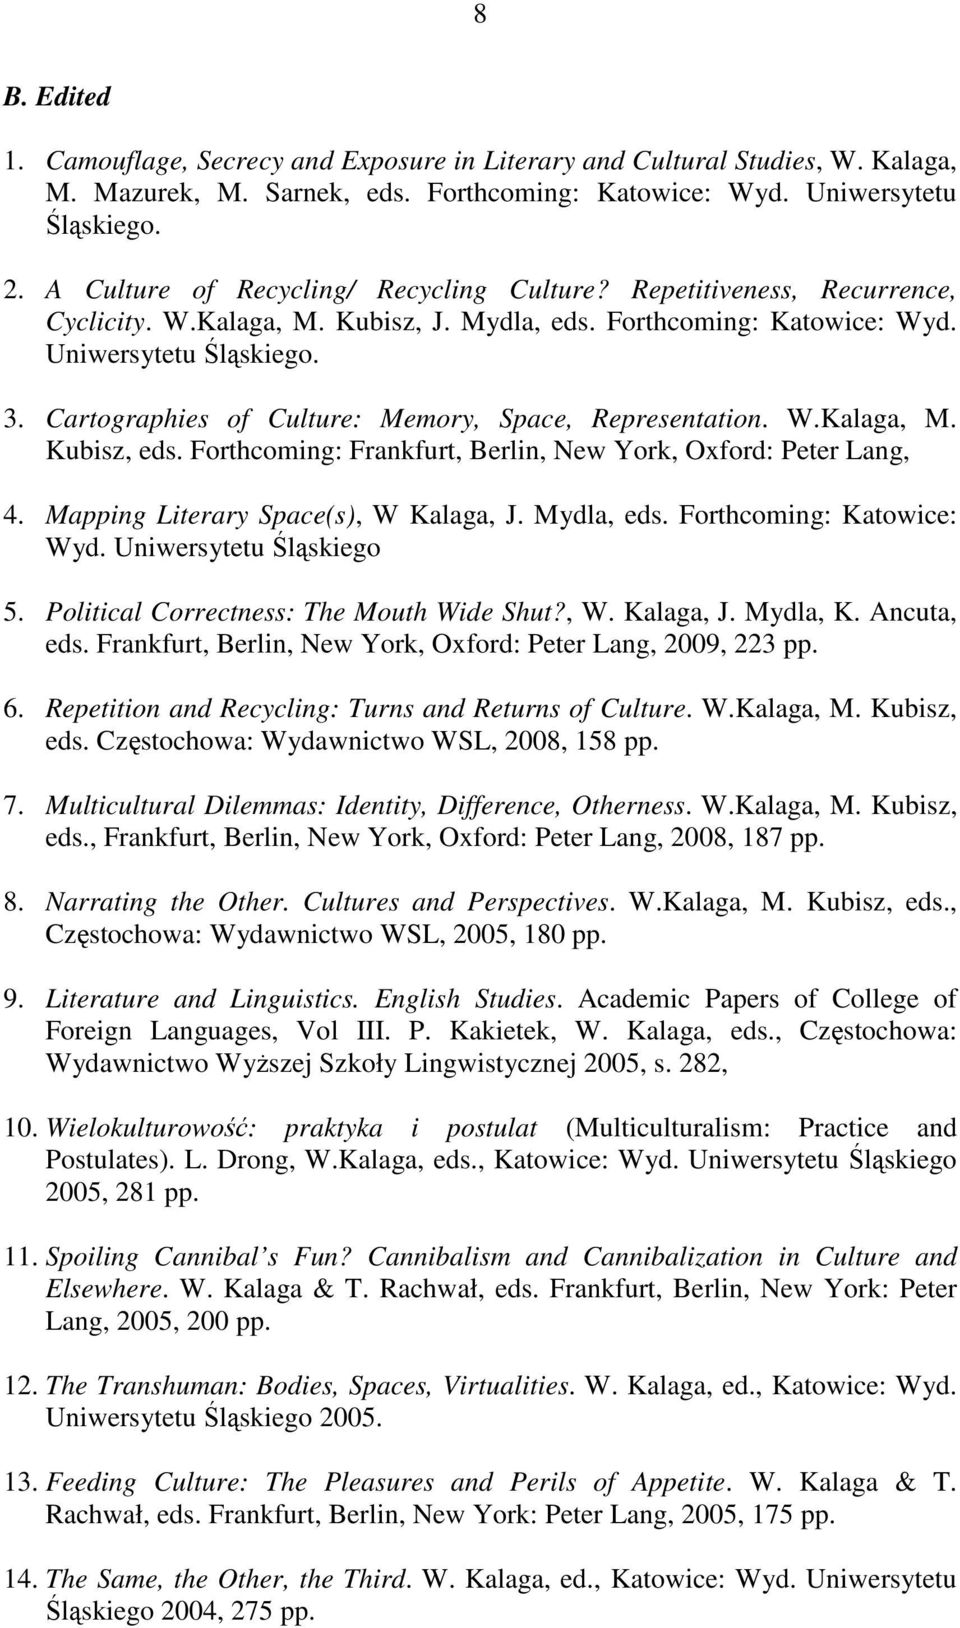 Cartographies of Culture: Memory, Space, Representation. W.Kalaga, M. Kubisz, eds. Forthcoming: Frankfurt, Berlin, New York, Oxford: Peter Lang, 4. Mapping Literary Space(s), W Kalaga, J. Mydla, eds.